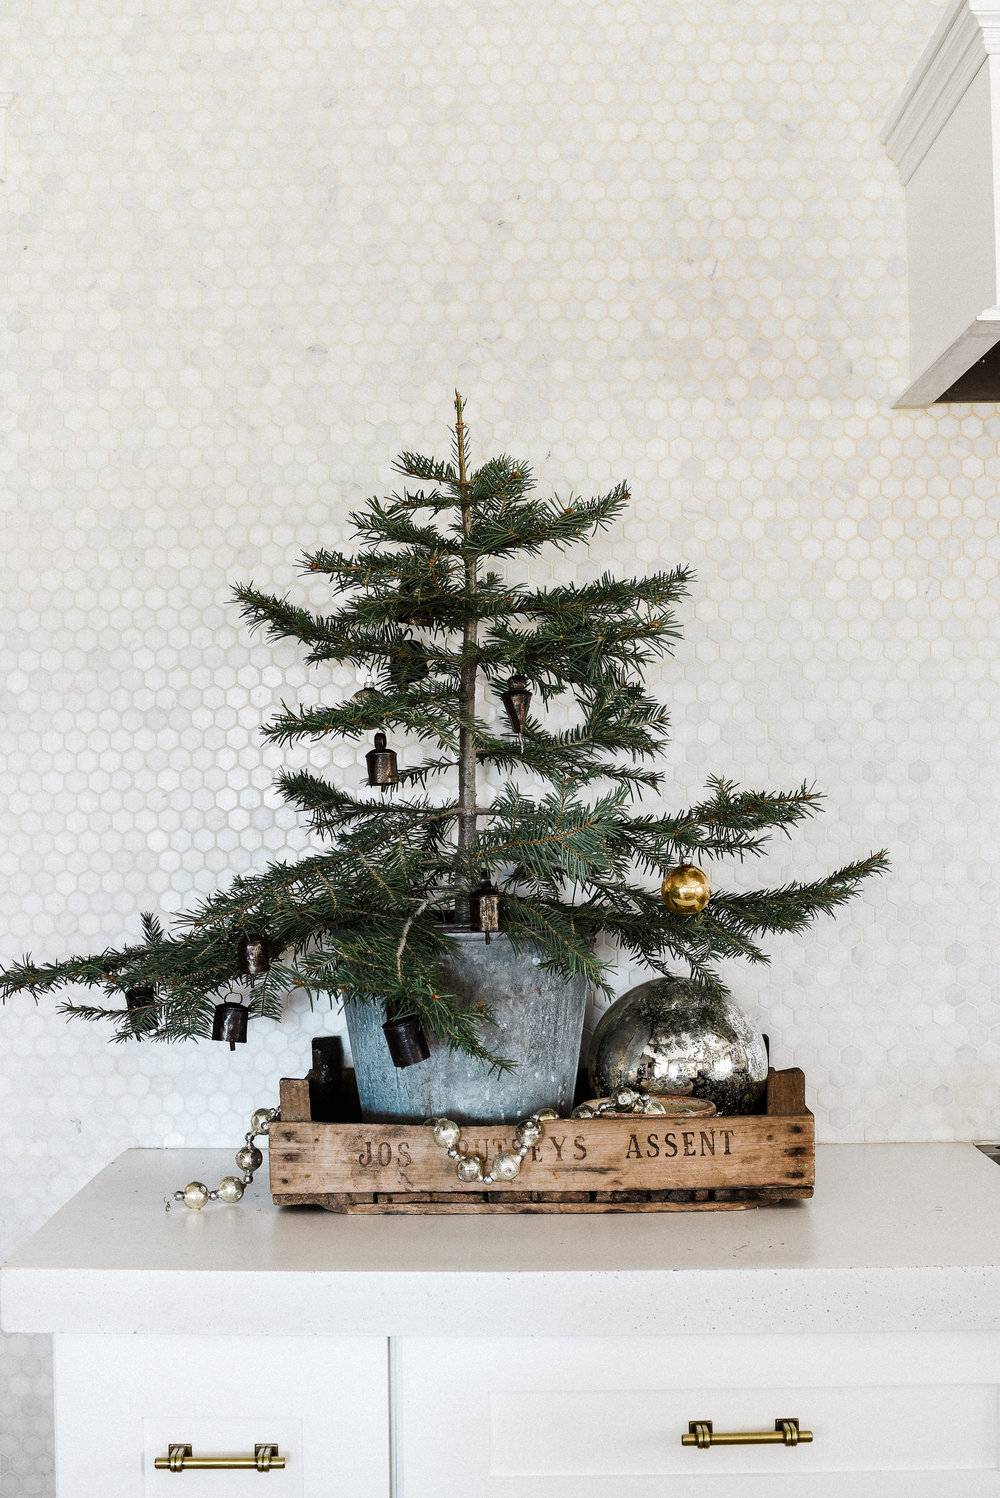 Minimalistic Christmas tree decorating ideas from boxwoodavenue.com | #farmhousechristmas